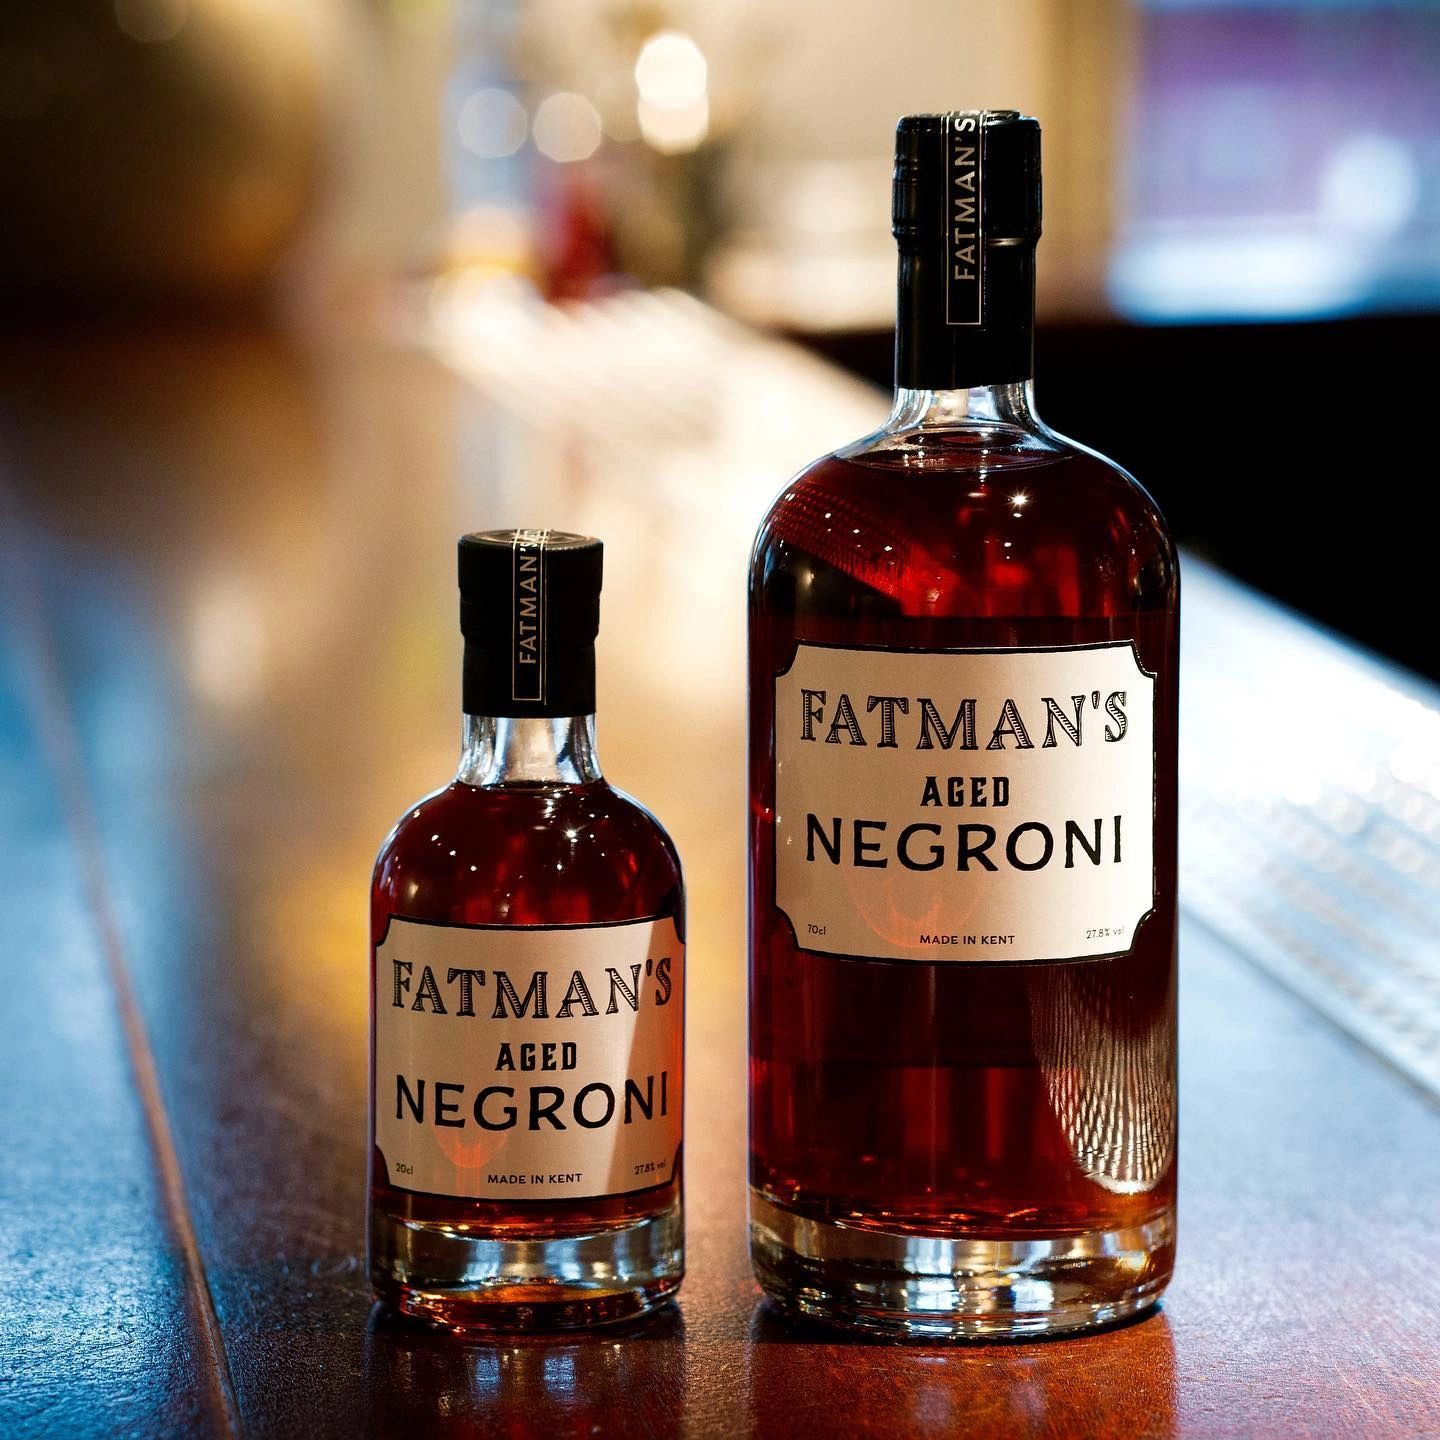 Fatman's  Aged Negroni, bottled cocktails, beer wine and spirits gift cards.